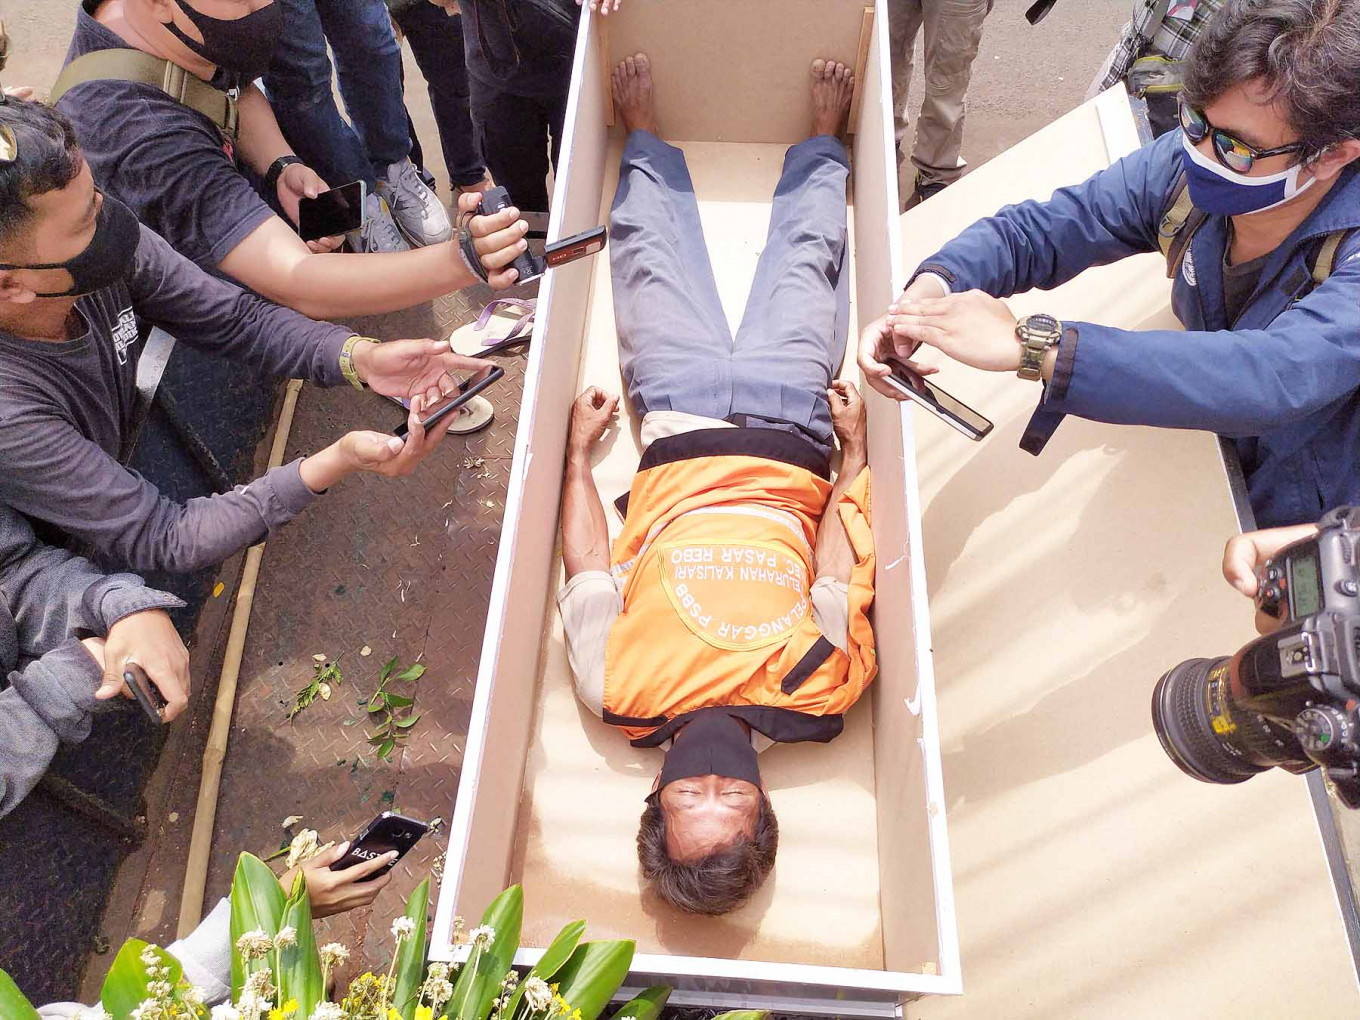 Satpol PP to stop controversial fake coffin punishment